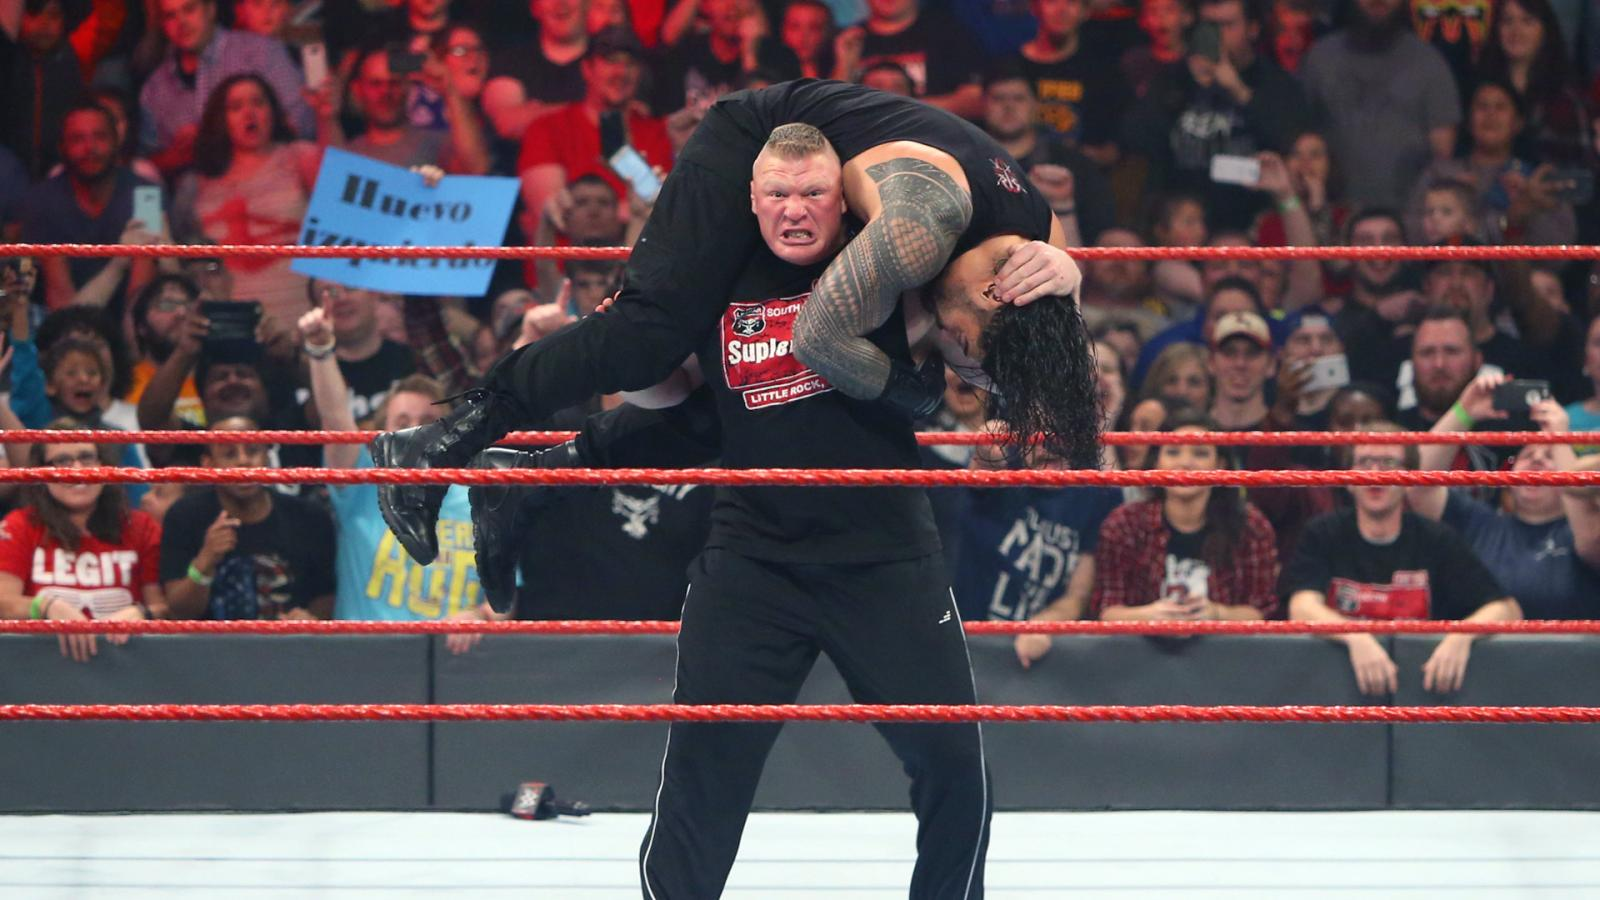 https://cdn.fansided.com/wp-content/blogs.dir/87/files/2017/01/Brock-Lesnar-Roman-Reigns-5.jpg